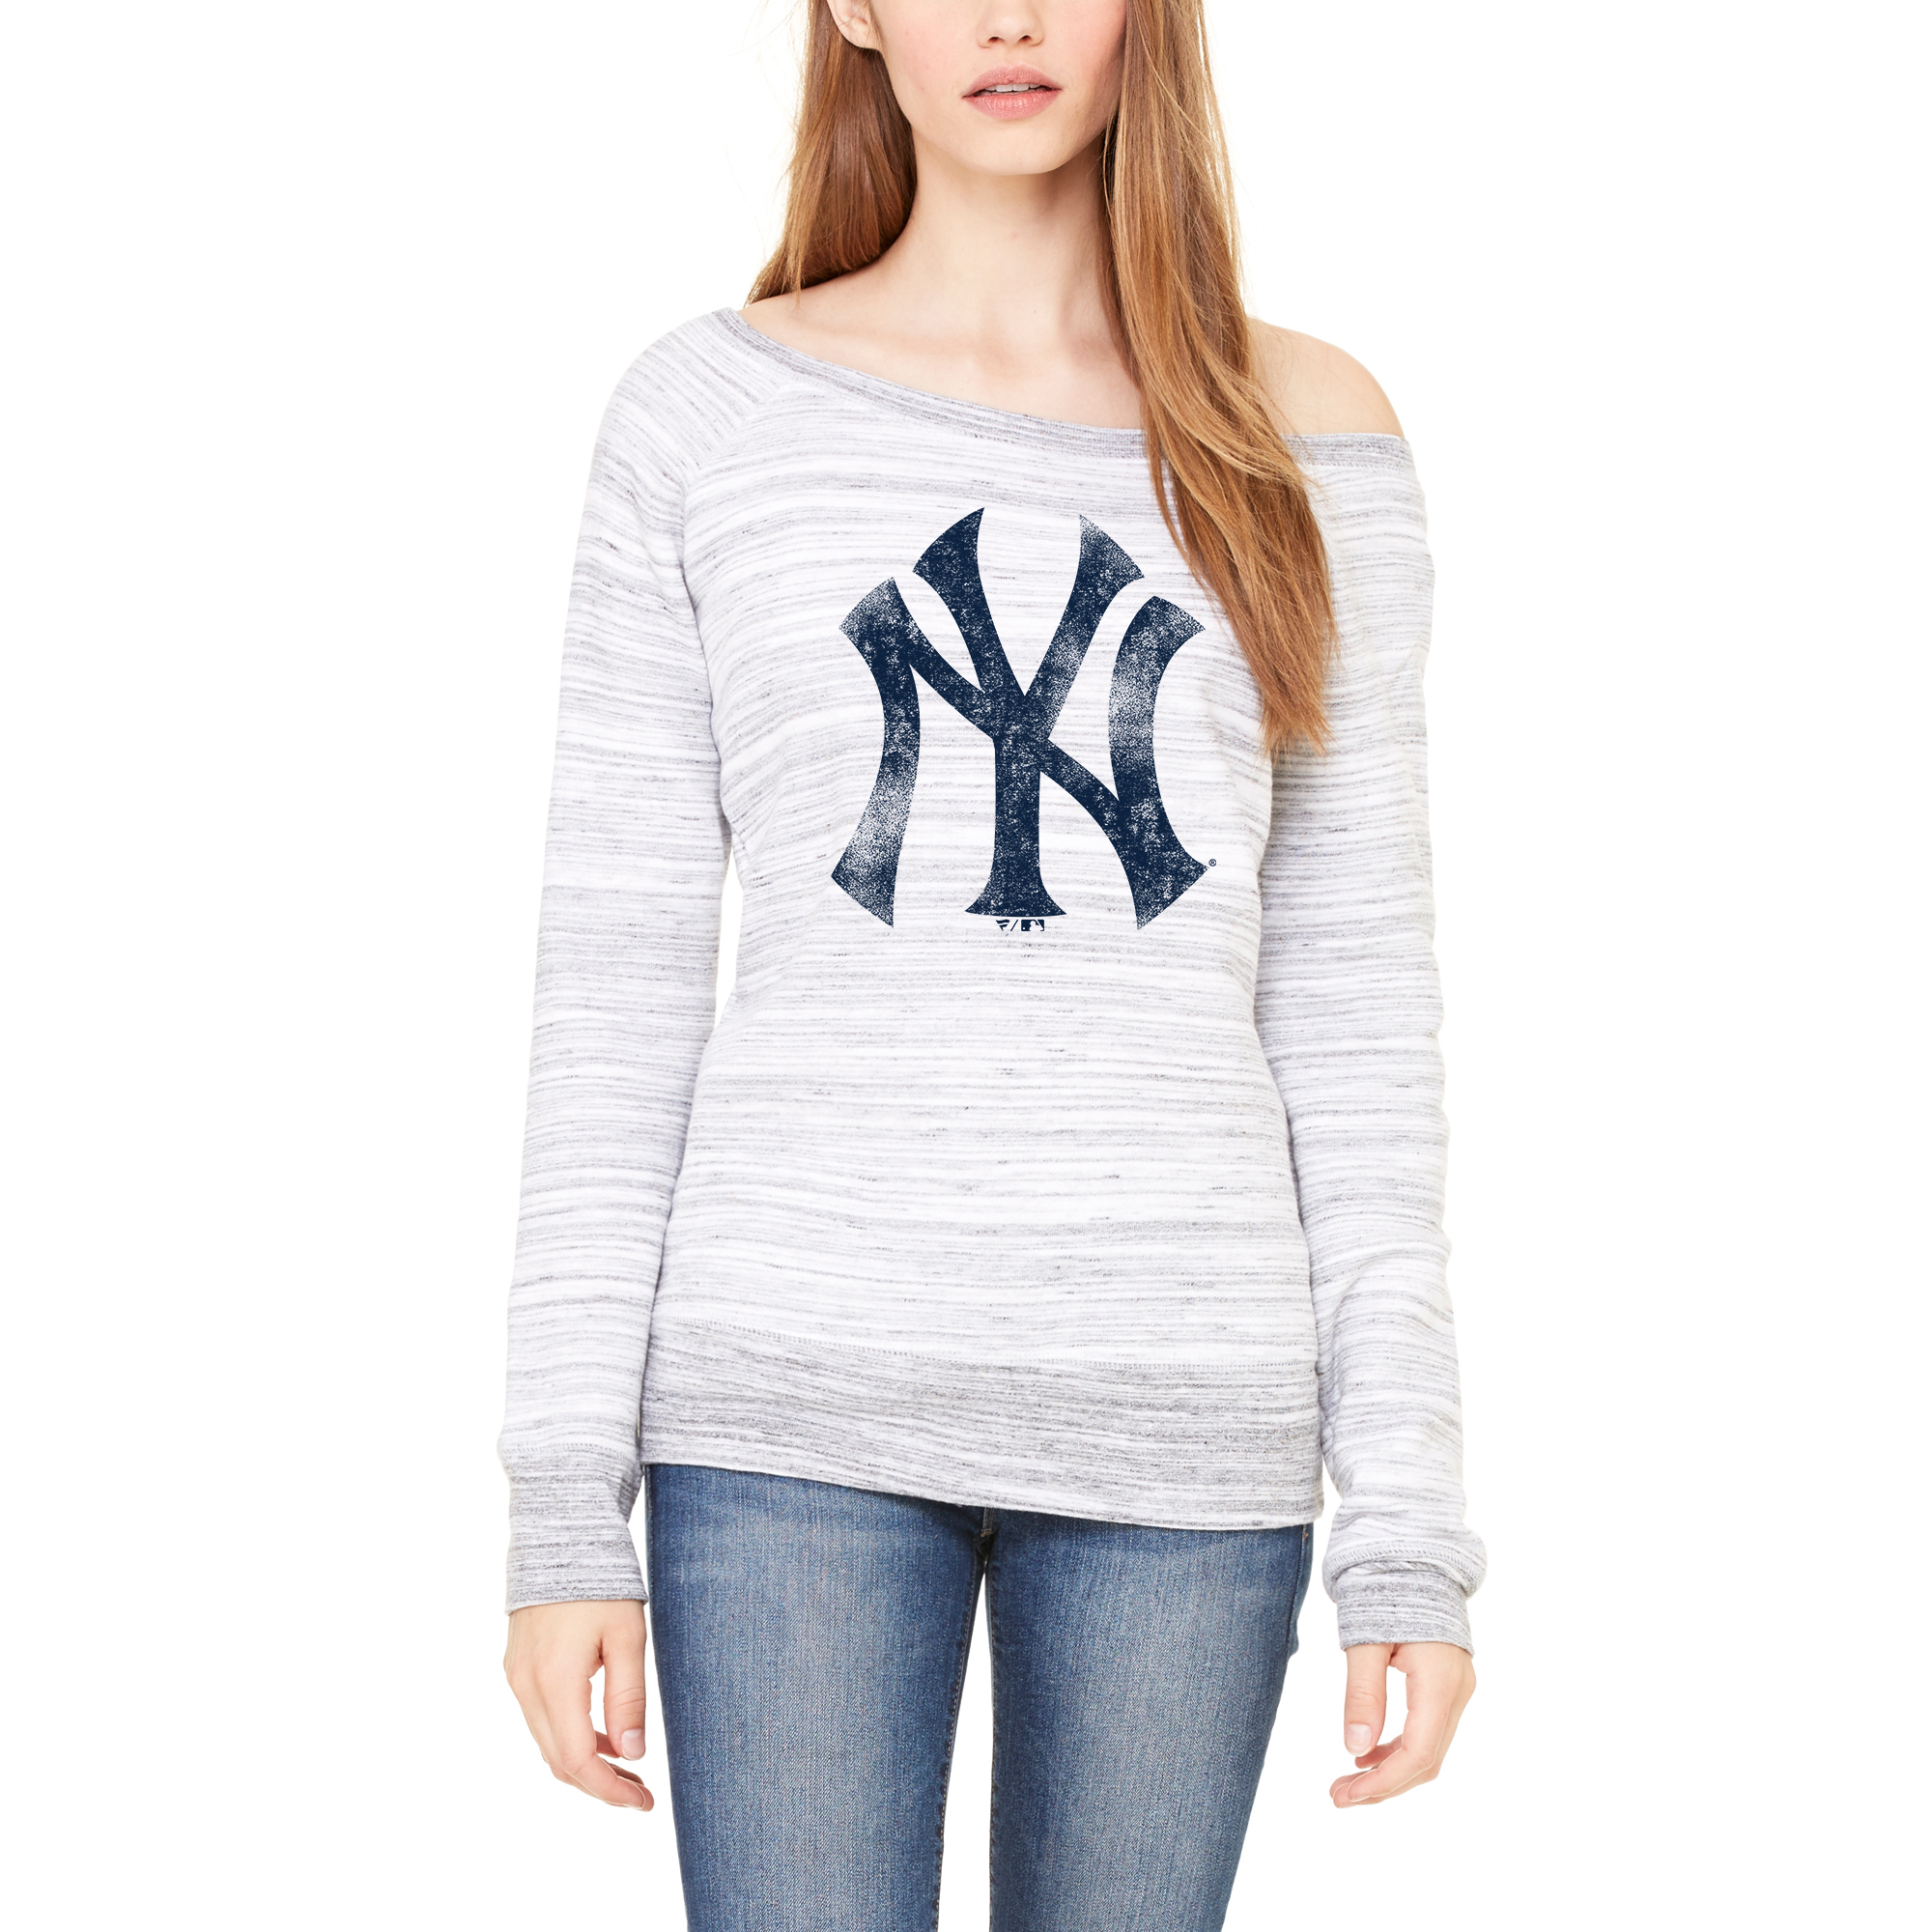 New York Yankees Let Loose by RNL Women's Game Day Wide Neck Sweatshirt - Light Gray Marble